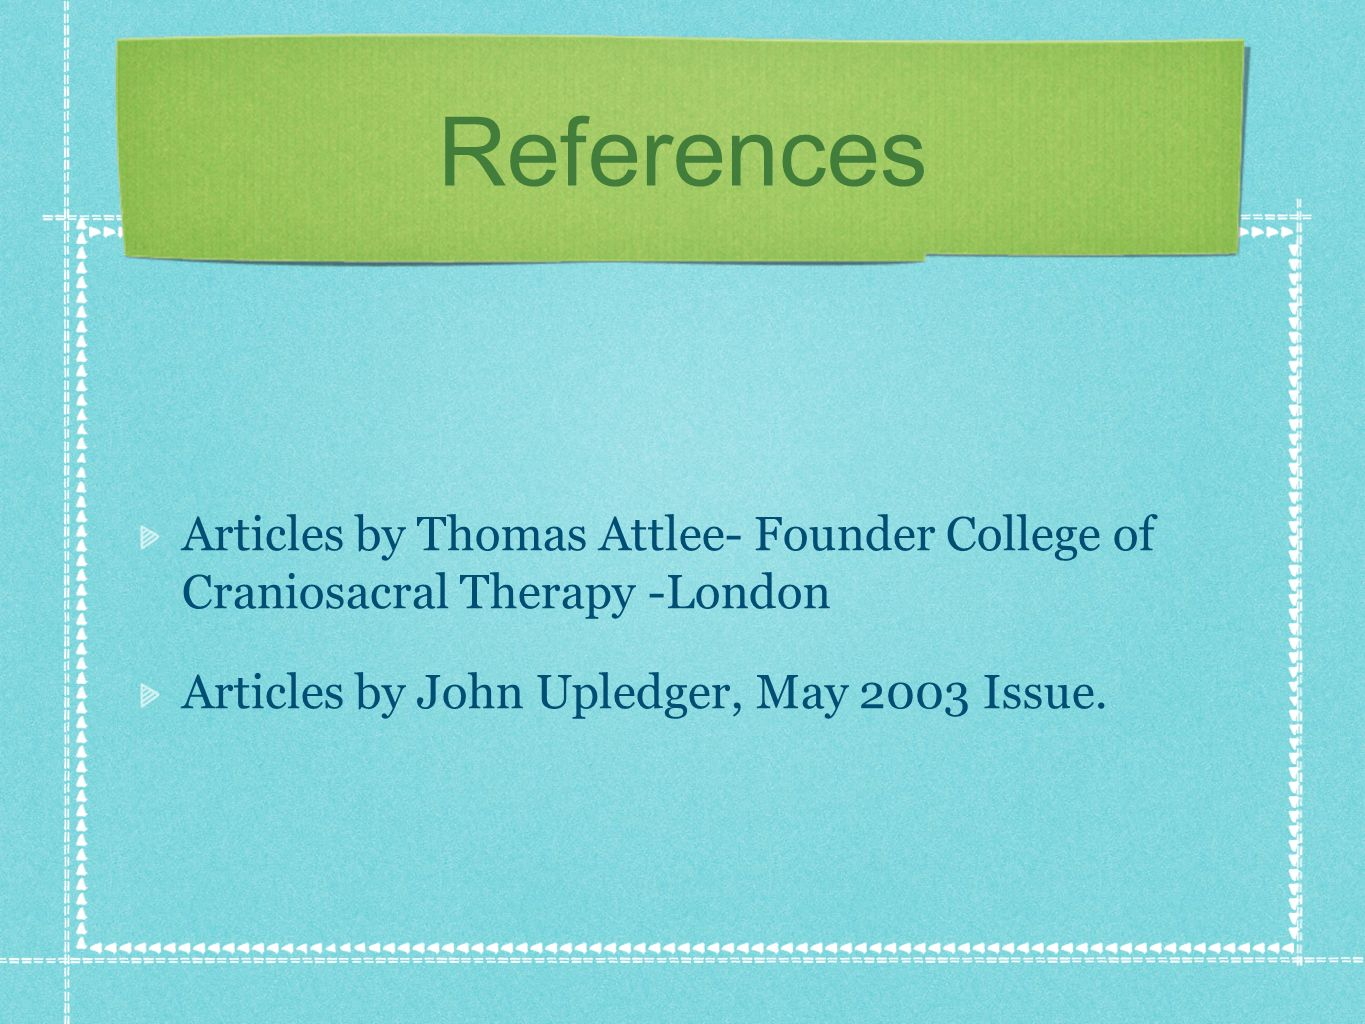 References Articles by Thomas Attlee- Founder College of Craniosacral Therapy -London Articles by John Upledger, May 2003 Issue.